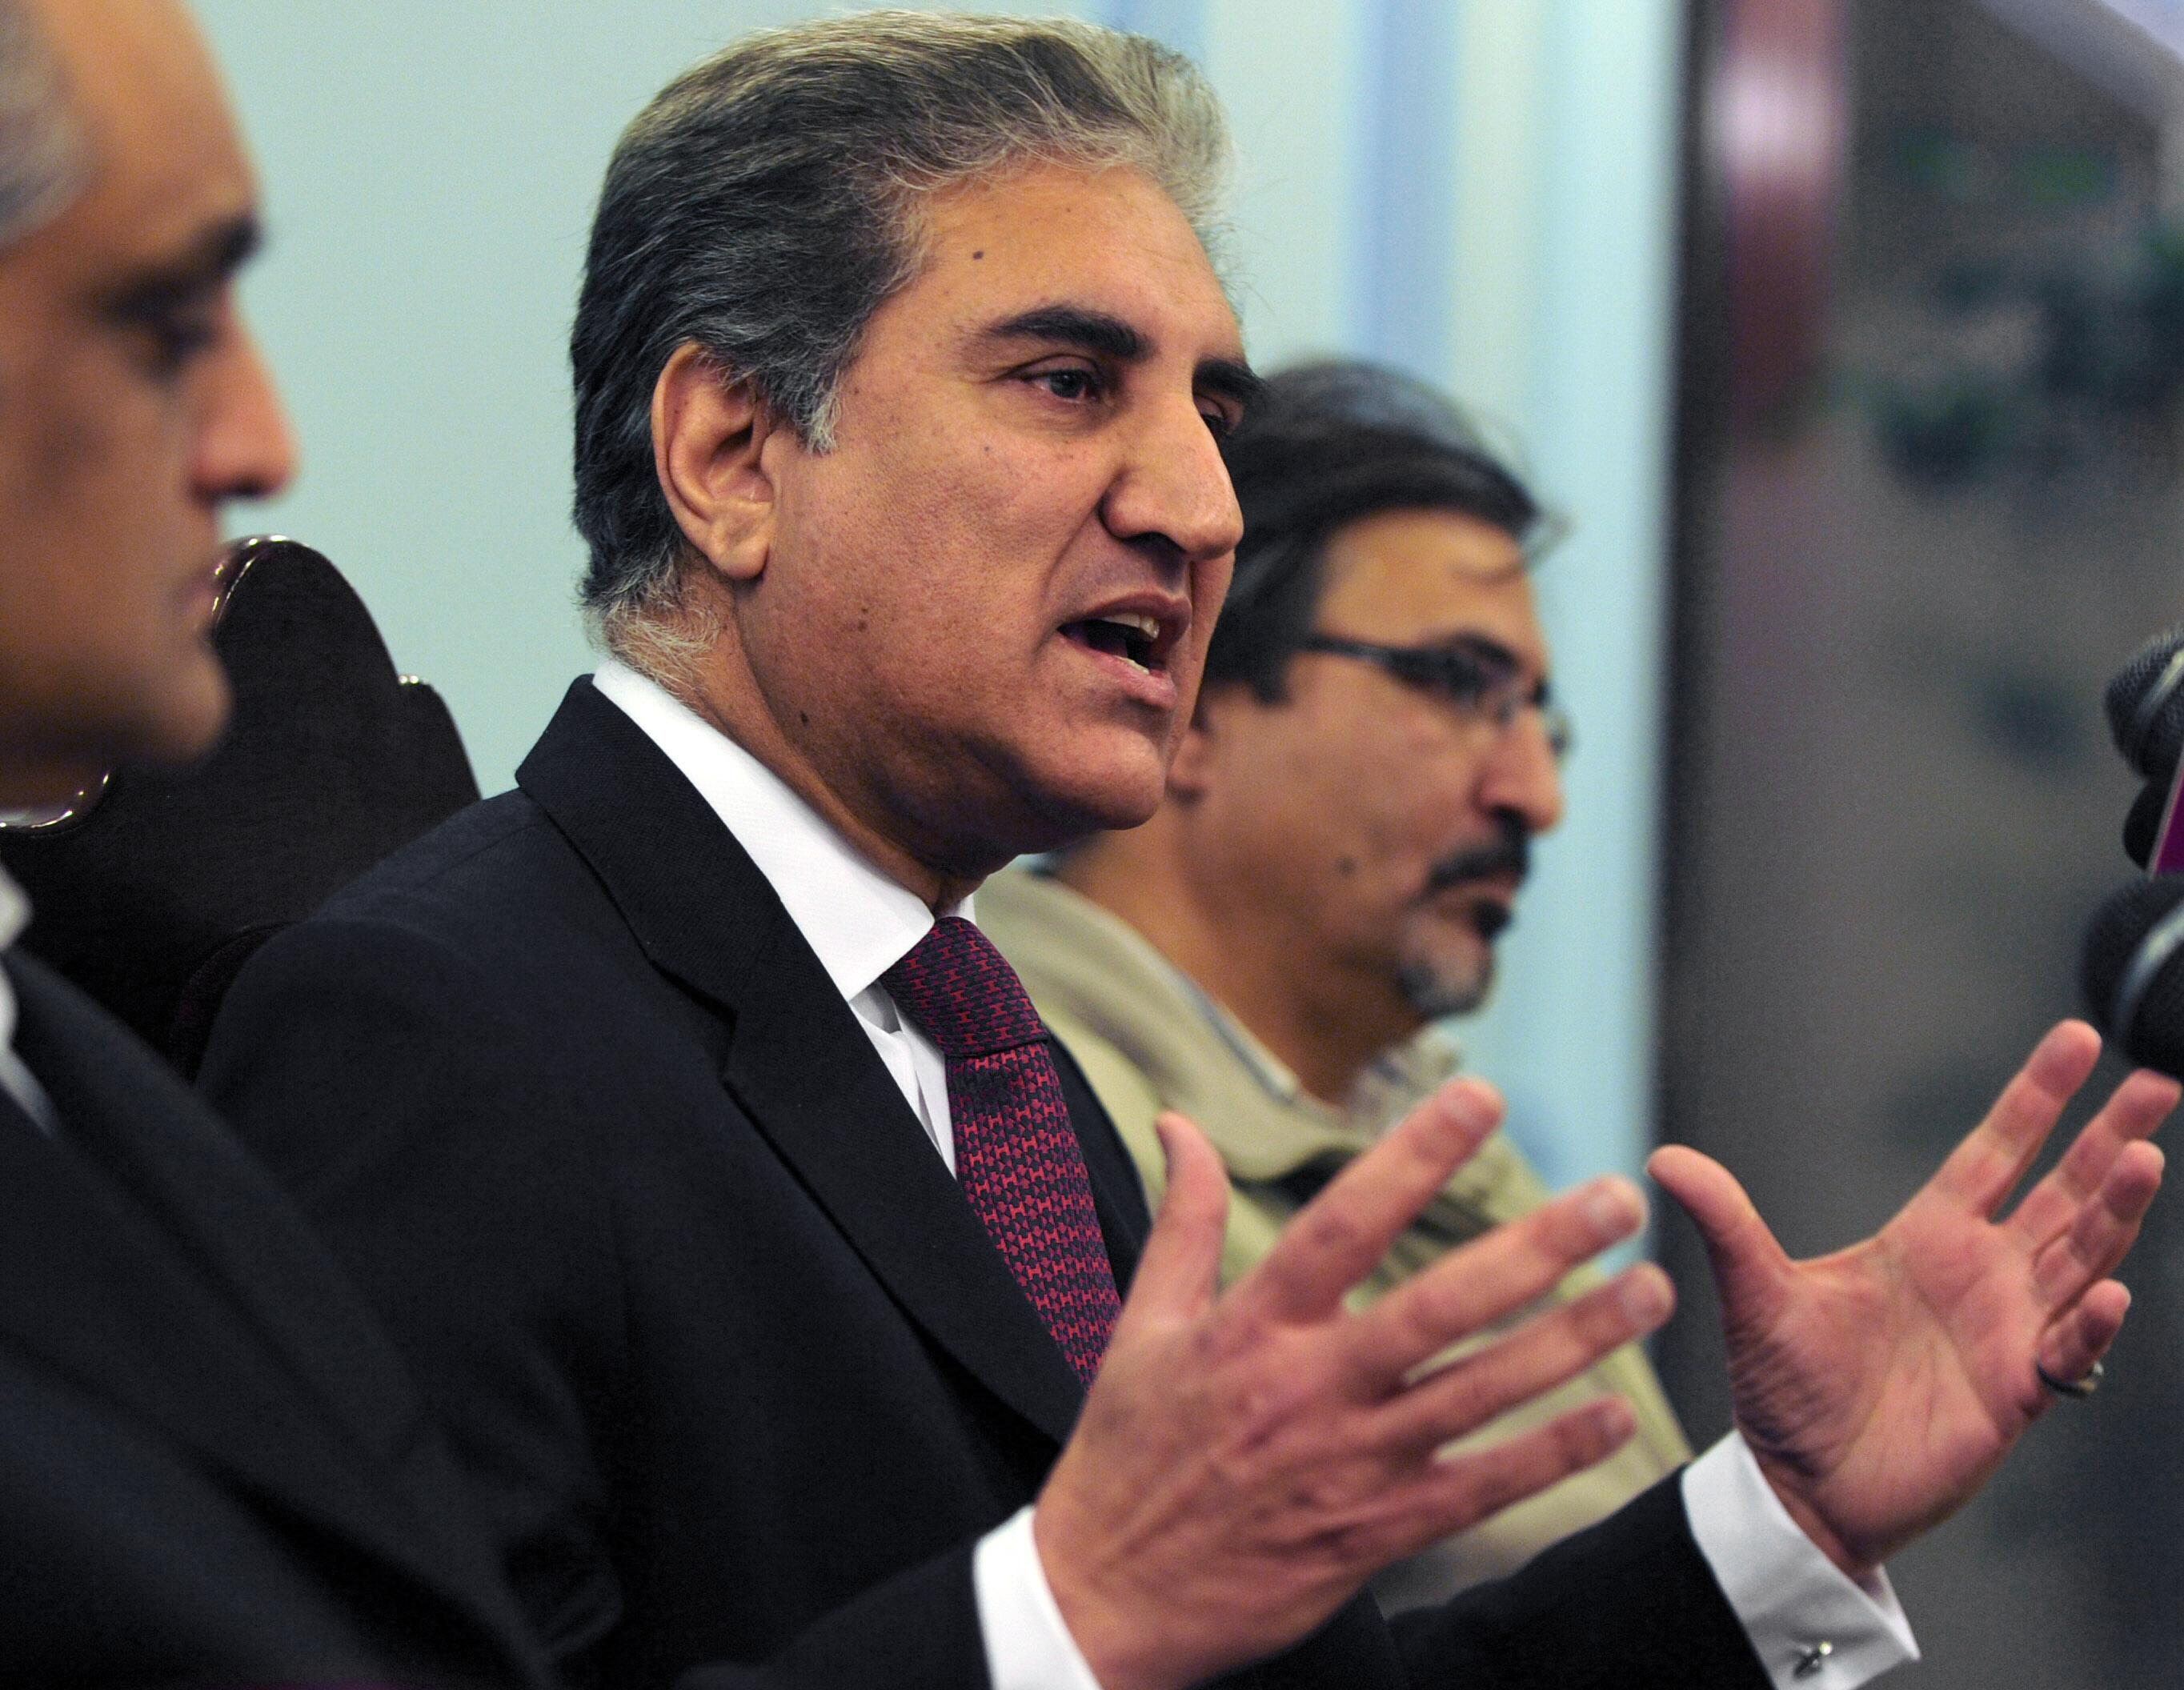 shah-mehmood-qureshi-afp-2-2-2-2-2-2-2